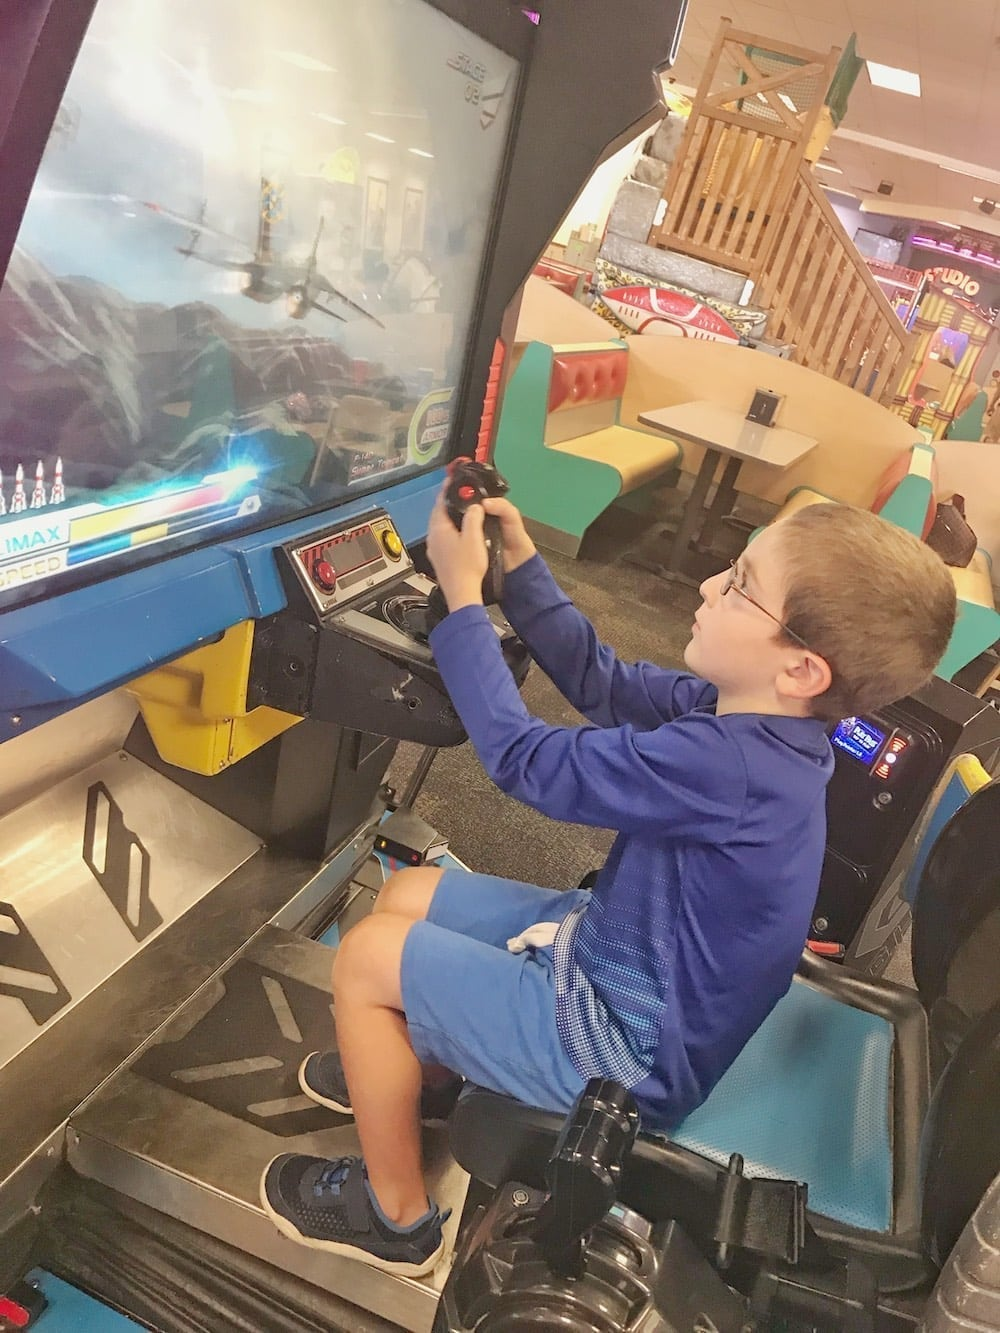 Chuck E Cheese's flying game